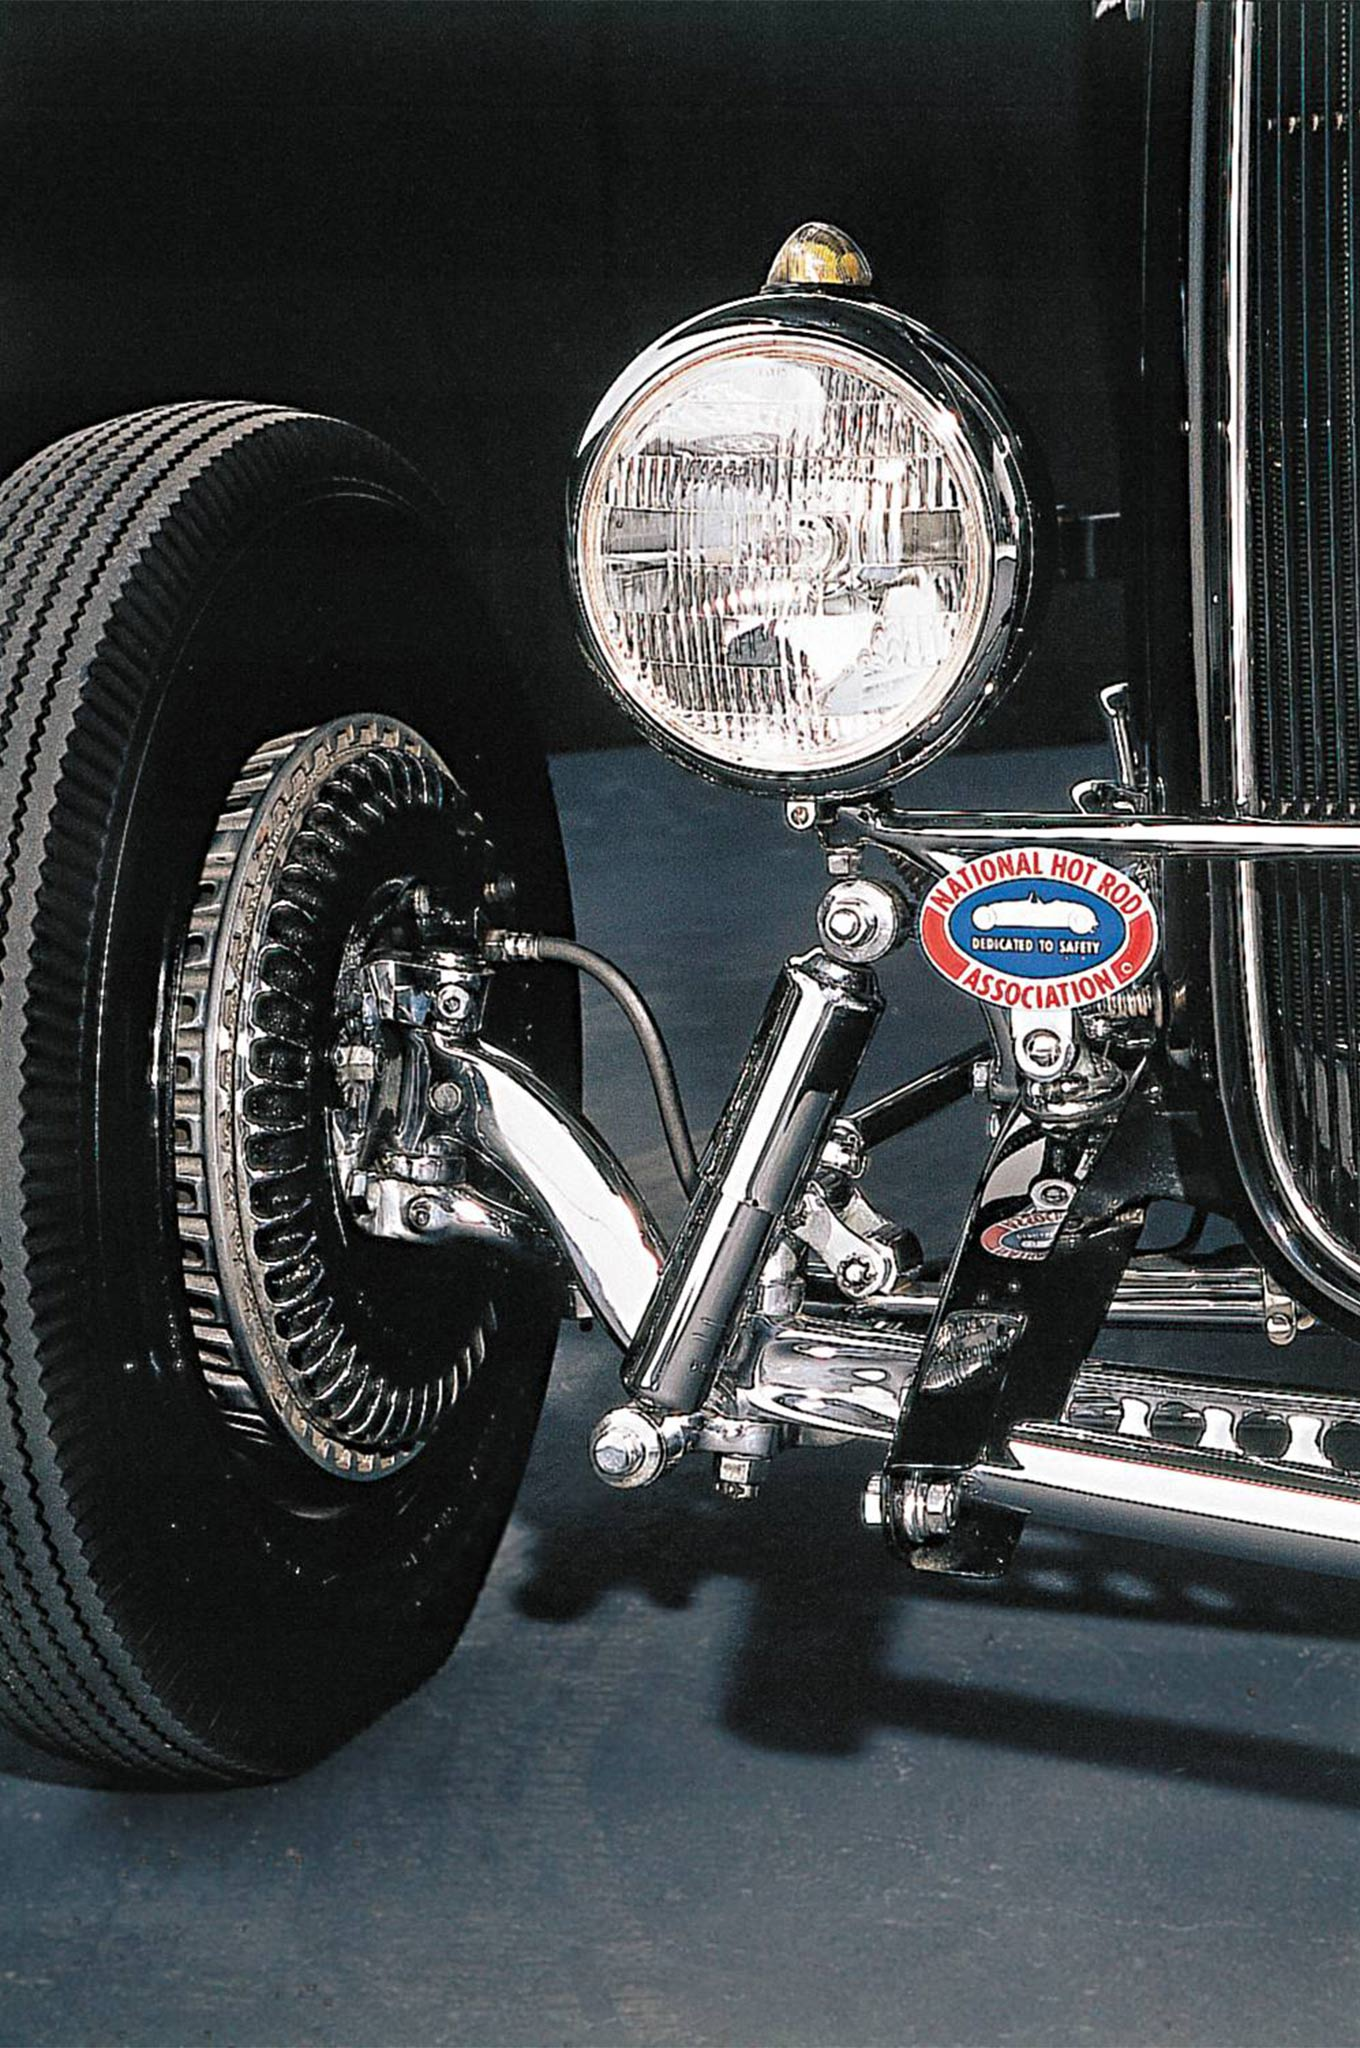 """Properly installed, as they are on author Ken Gross' '32 Ford roadster (shown here), Kinmont Safe Stop Disc Brakes are very attractive and they work extremely well. An old """"Oakland Roadster Show"""" trick was to chrome-plate the backing plates, and then rub off some of the paint, exposing the cooling fins. Interest in nostalgia hot rodding has driven Kinmont prices through the roof. If you've got a set, think of them as an aluminum annuity."""